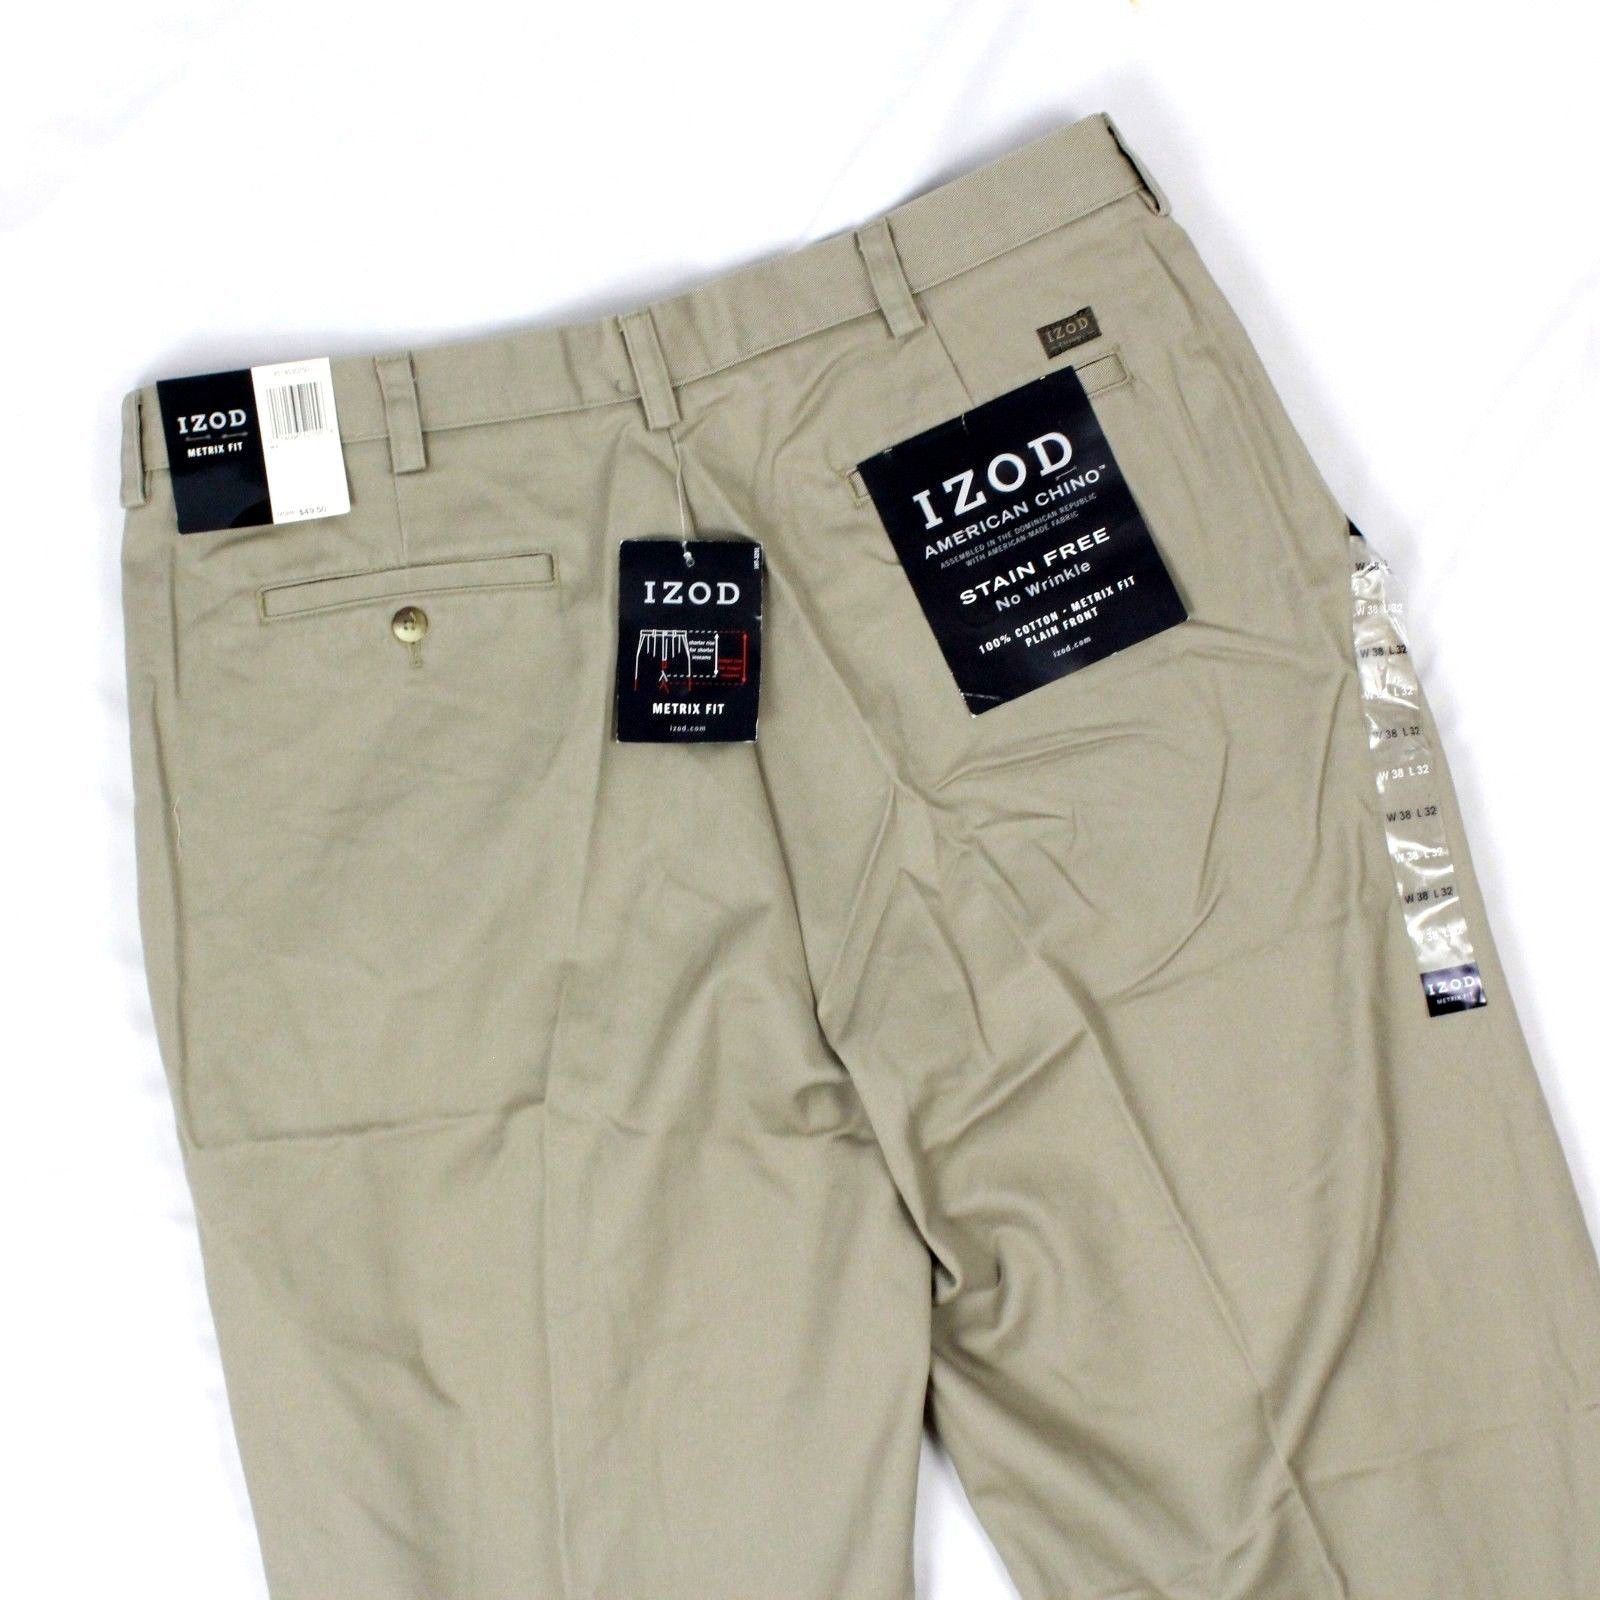 a02a1f177c31 Izod Hombres American Chinos Mancha sin and 10 similar items